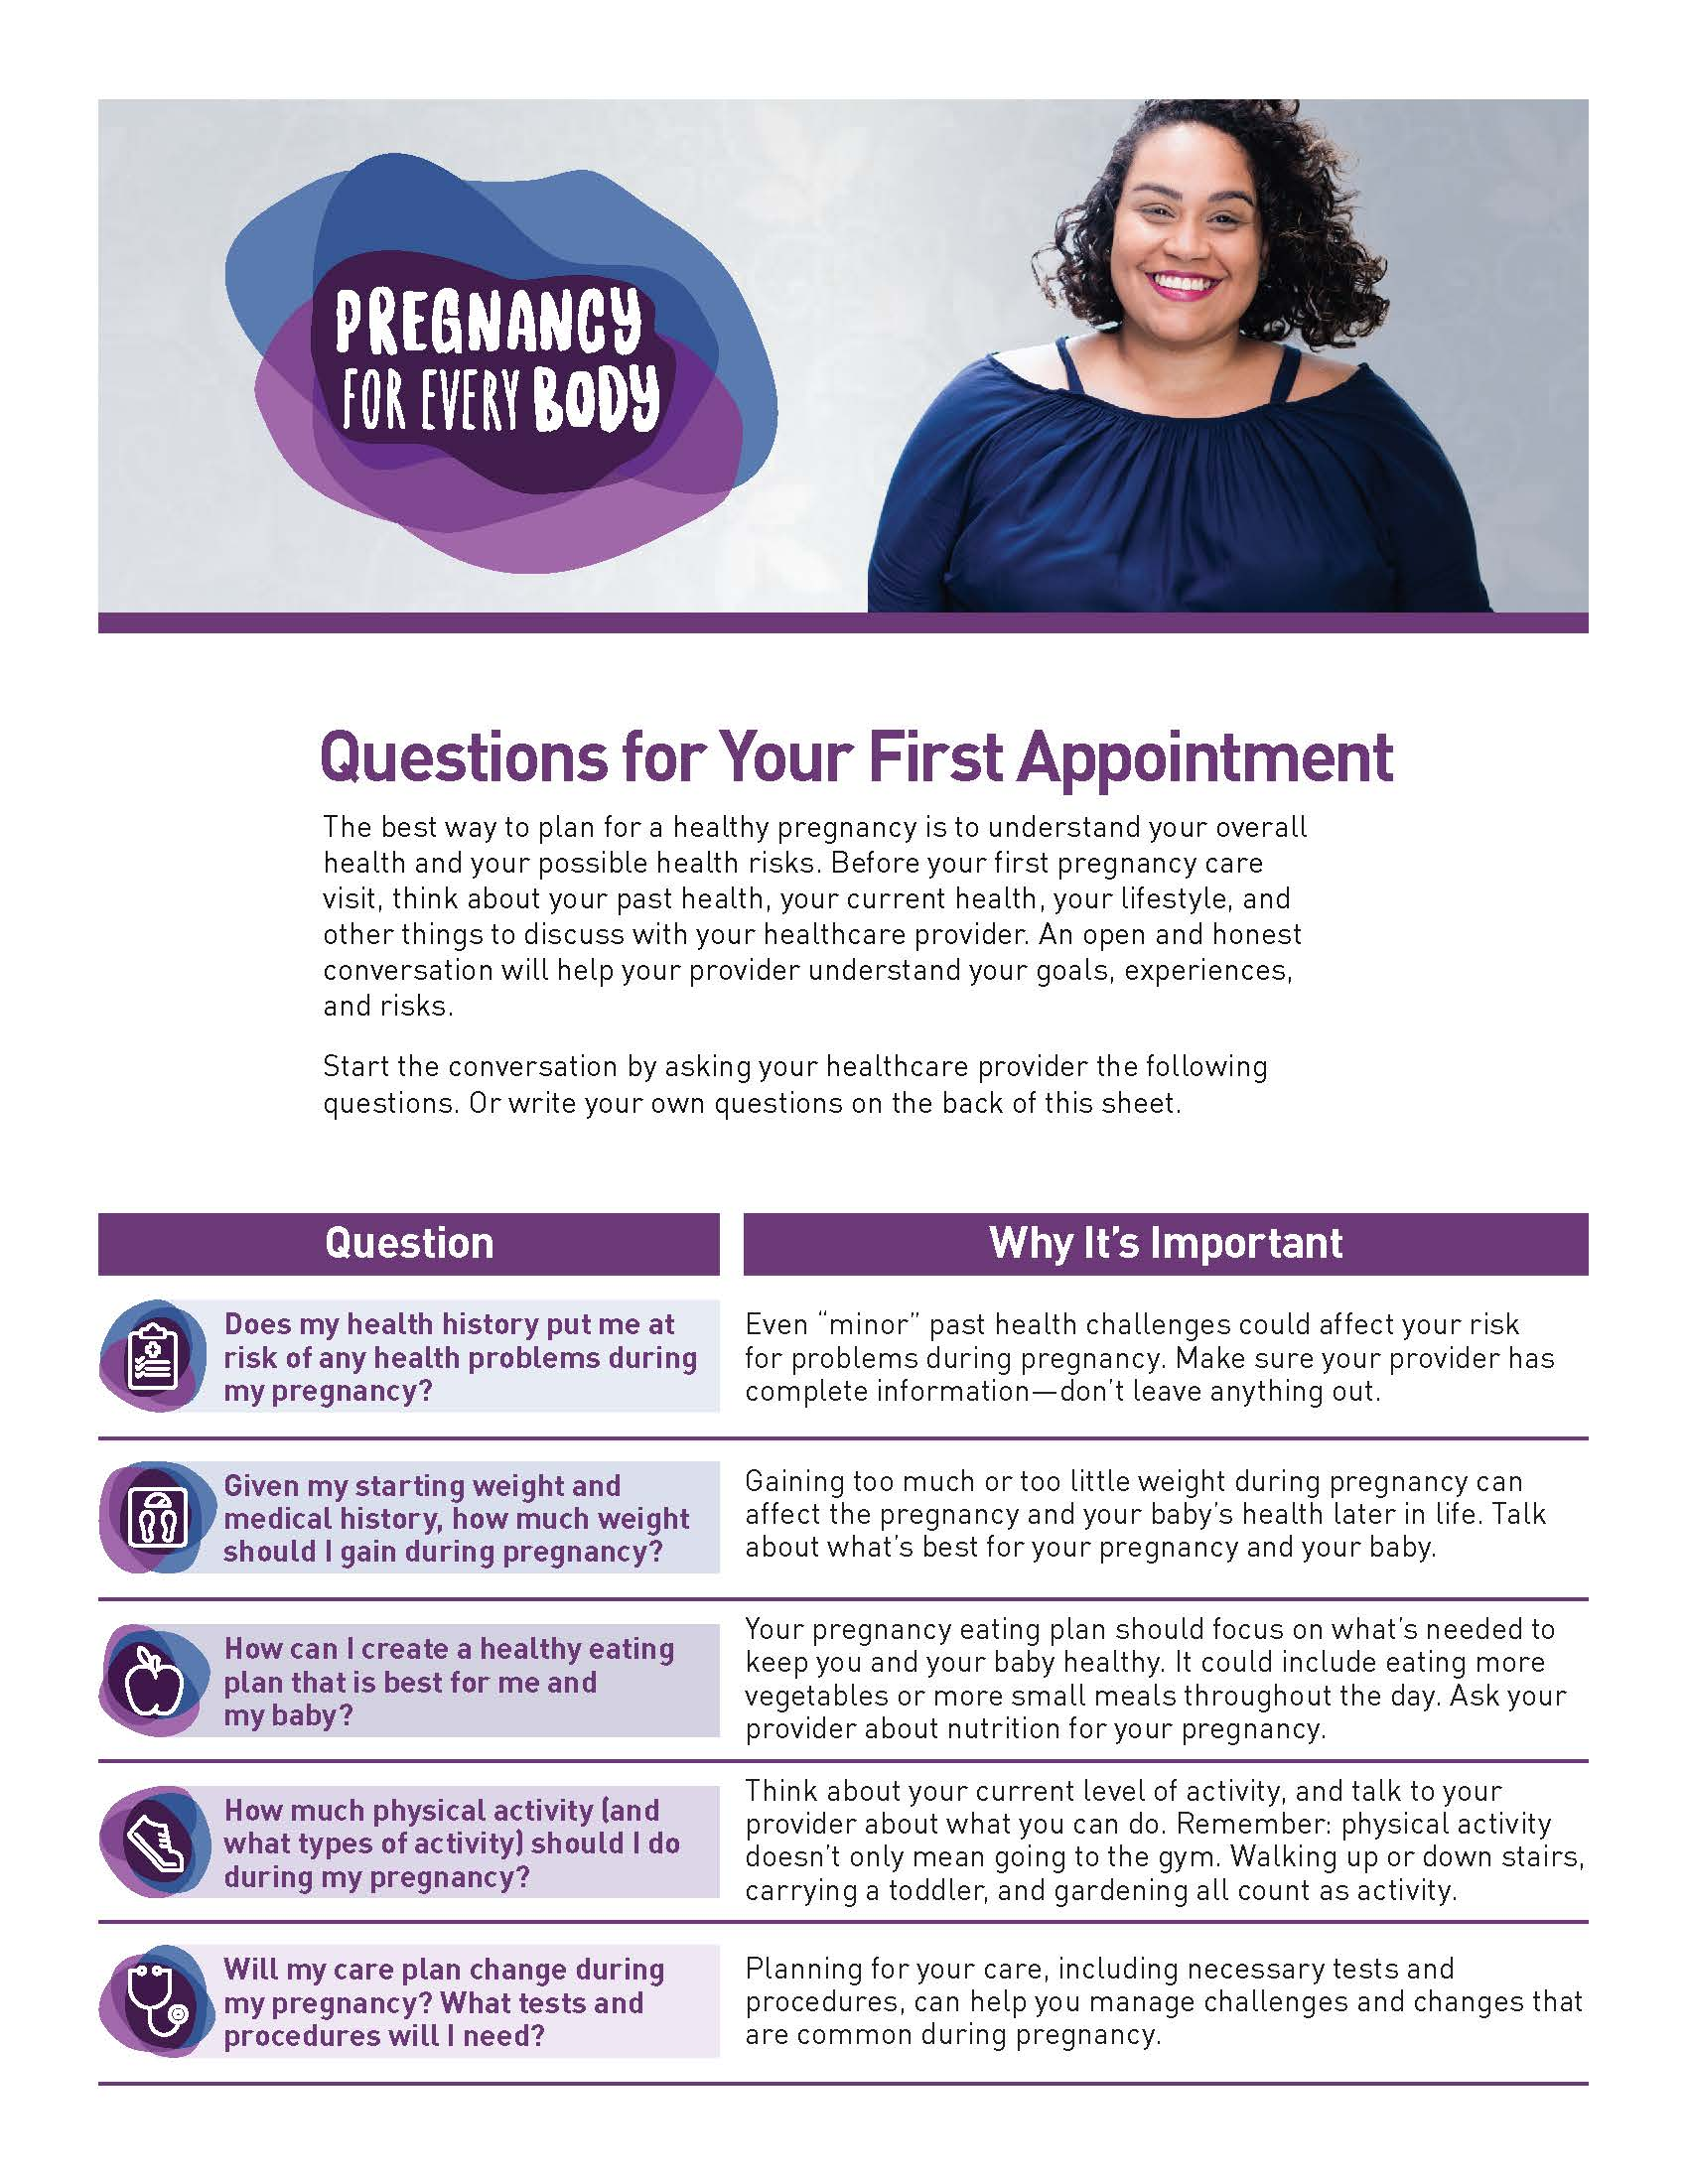 Image of the Pregnancy for Every Body Factsheet: Questions for Your First Appointment.